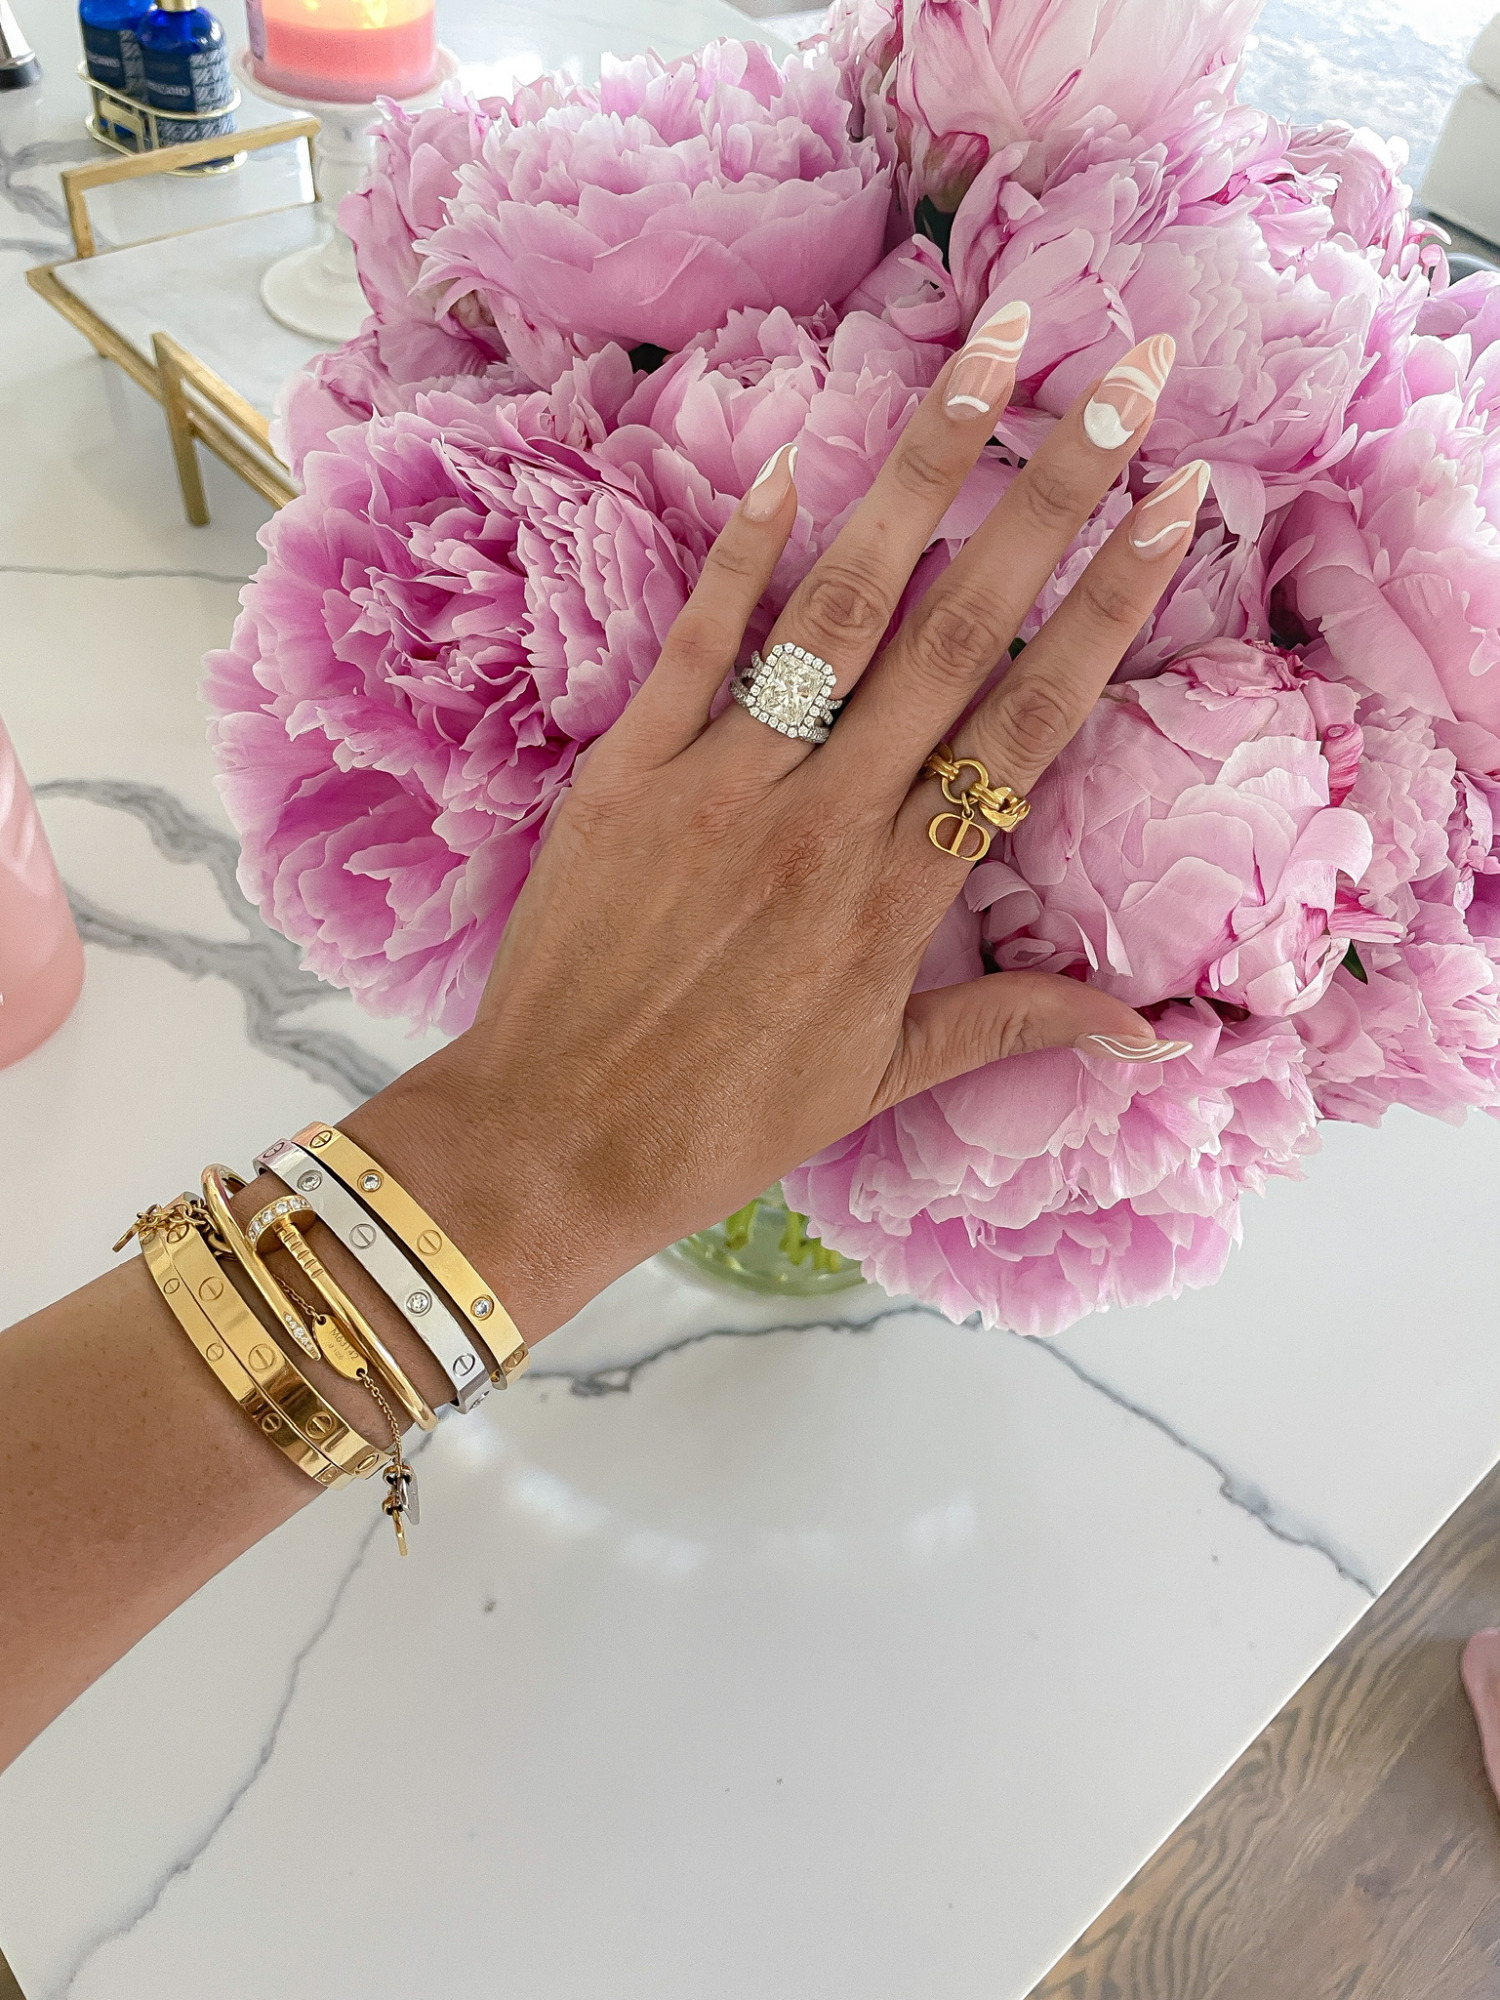 Emily ann gemma engagement ring, radiant cut engagement ring, Cartier bracelet, wrist bracelet stack, dior ring, pink peonies, Emily ann gemma | June Instagram Recap by popular US fashion blog, The Sweetest Thing: image of Emily Gemma wearing a radiant cut engagement ring, gold bracelets, and gold ring.